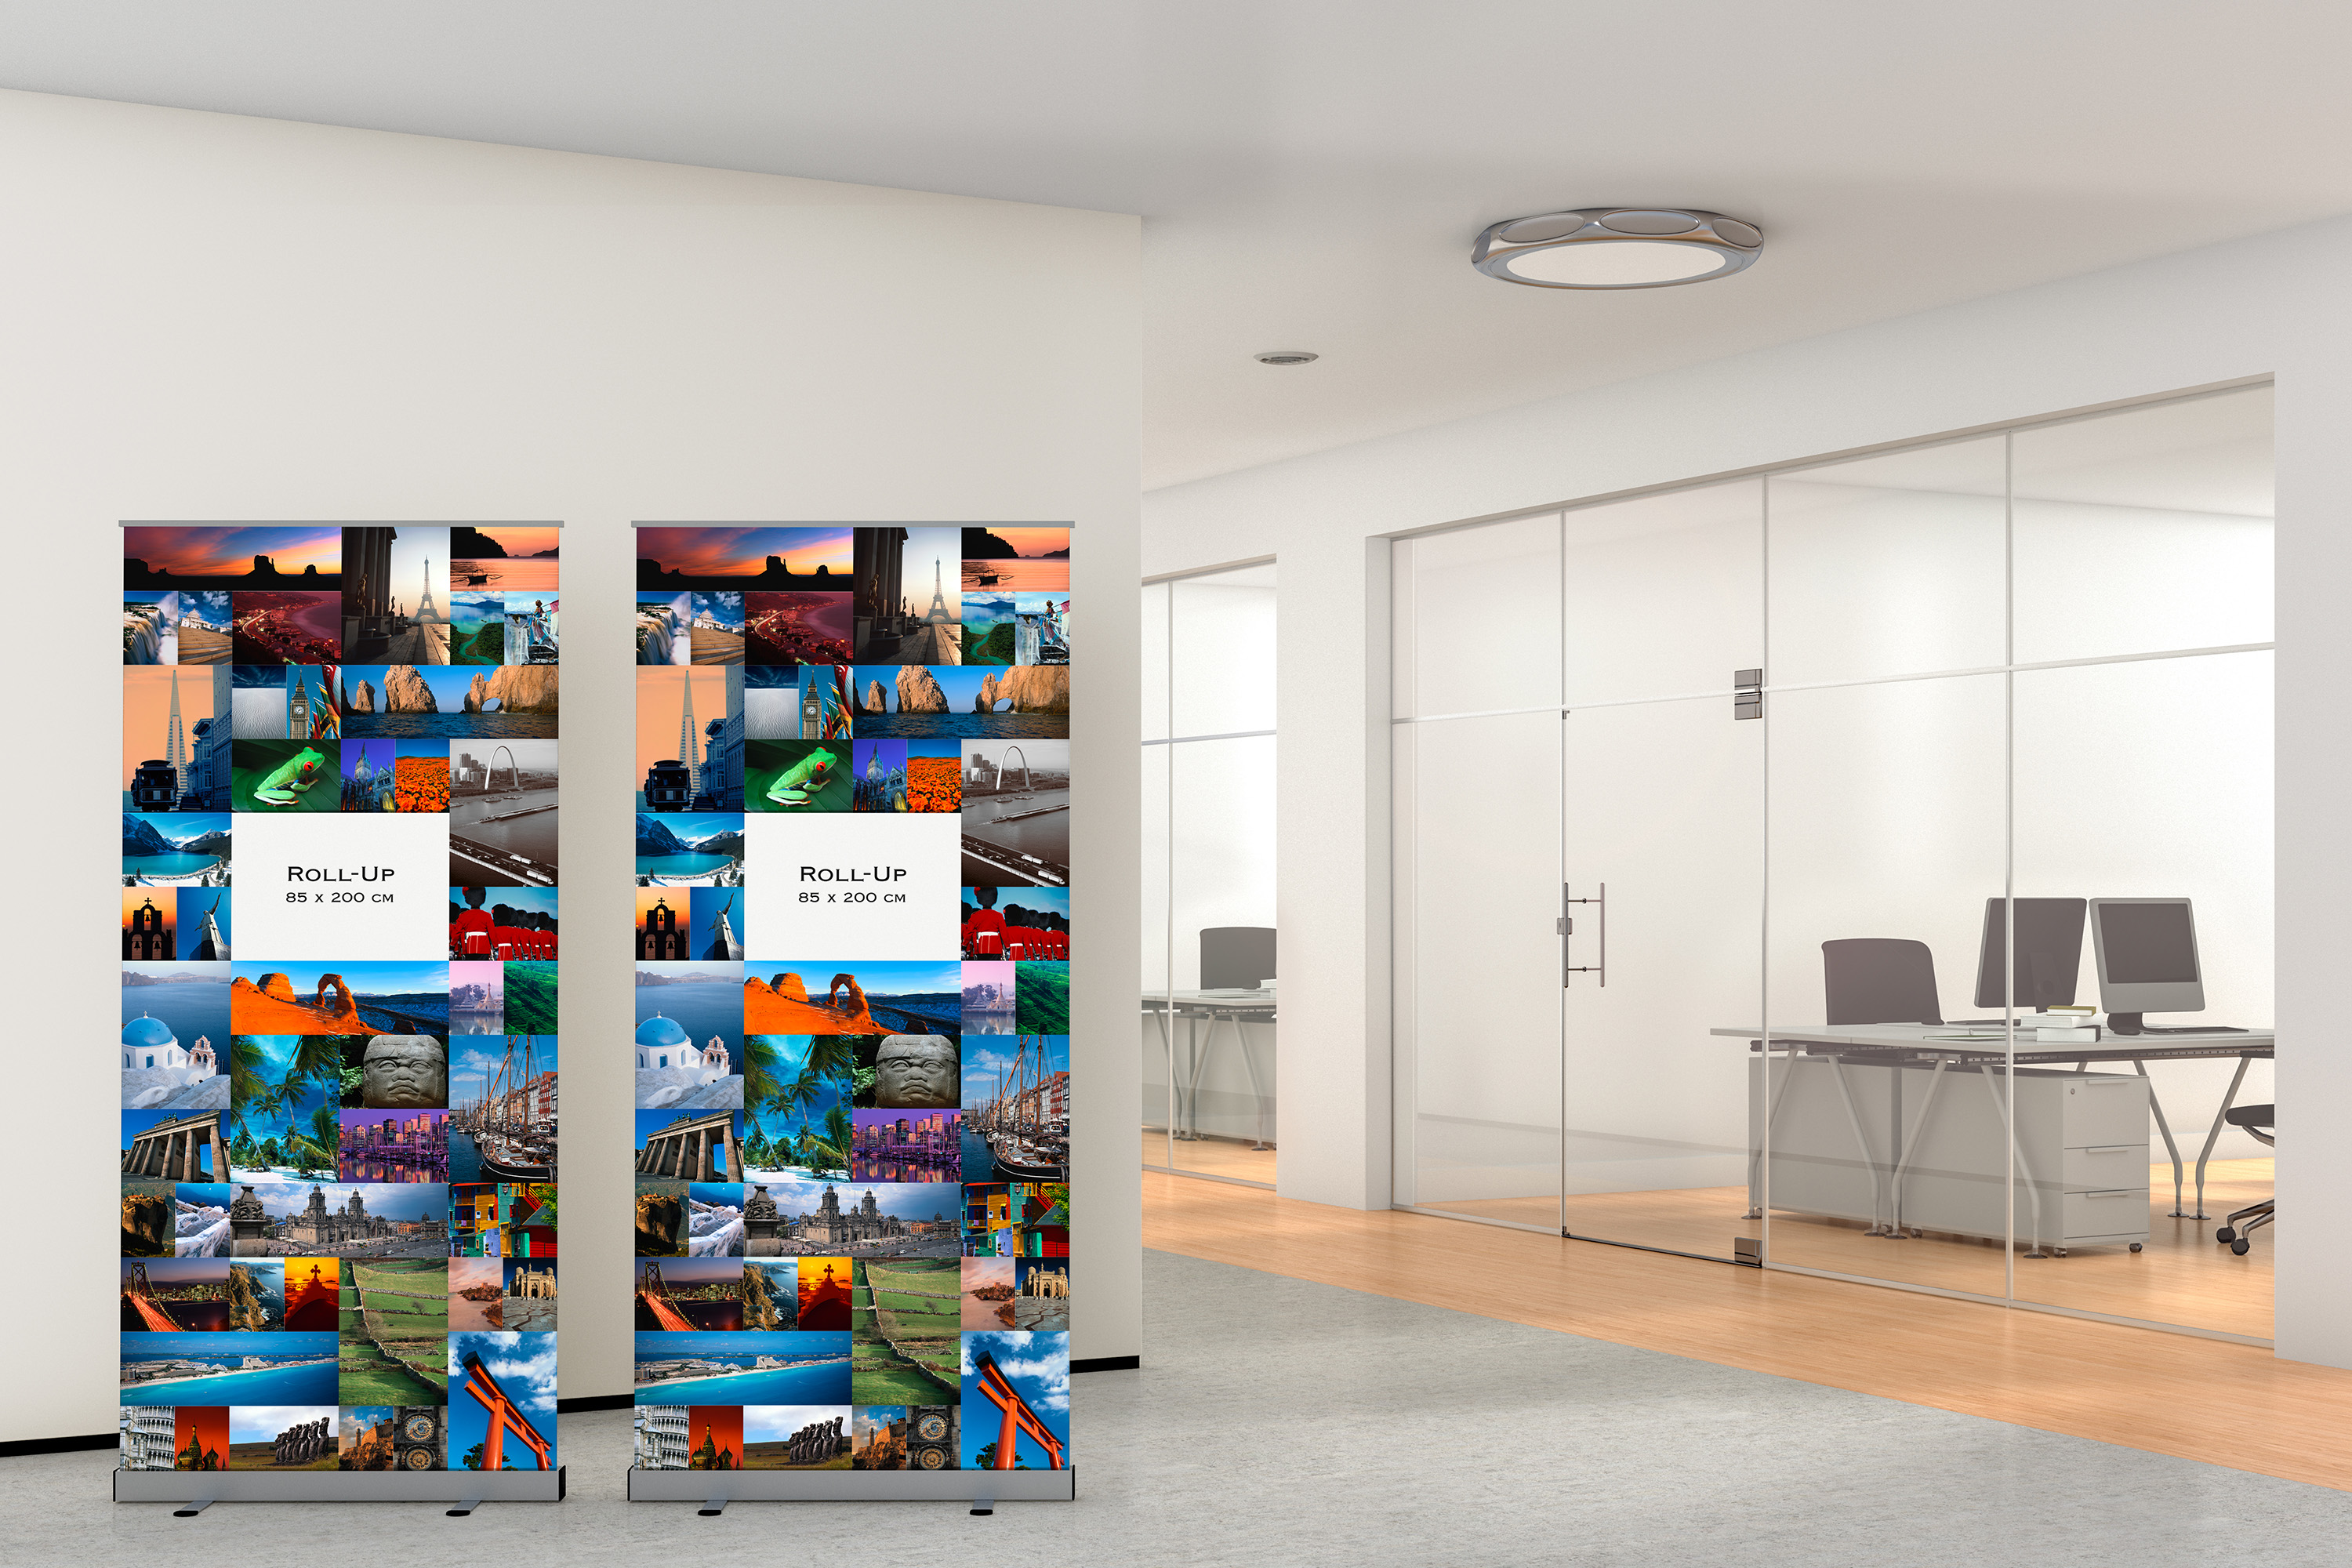 Roll-Up, Displays, Rollup Systeme